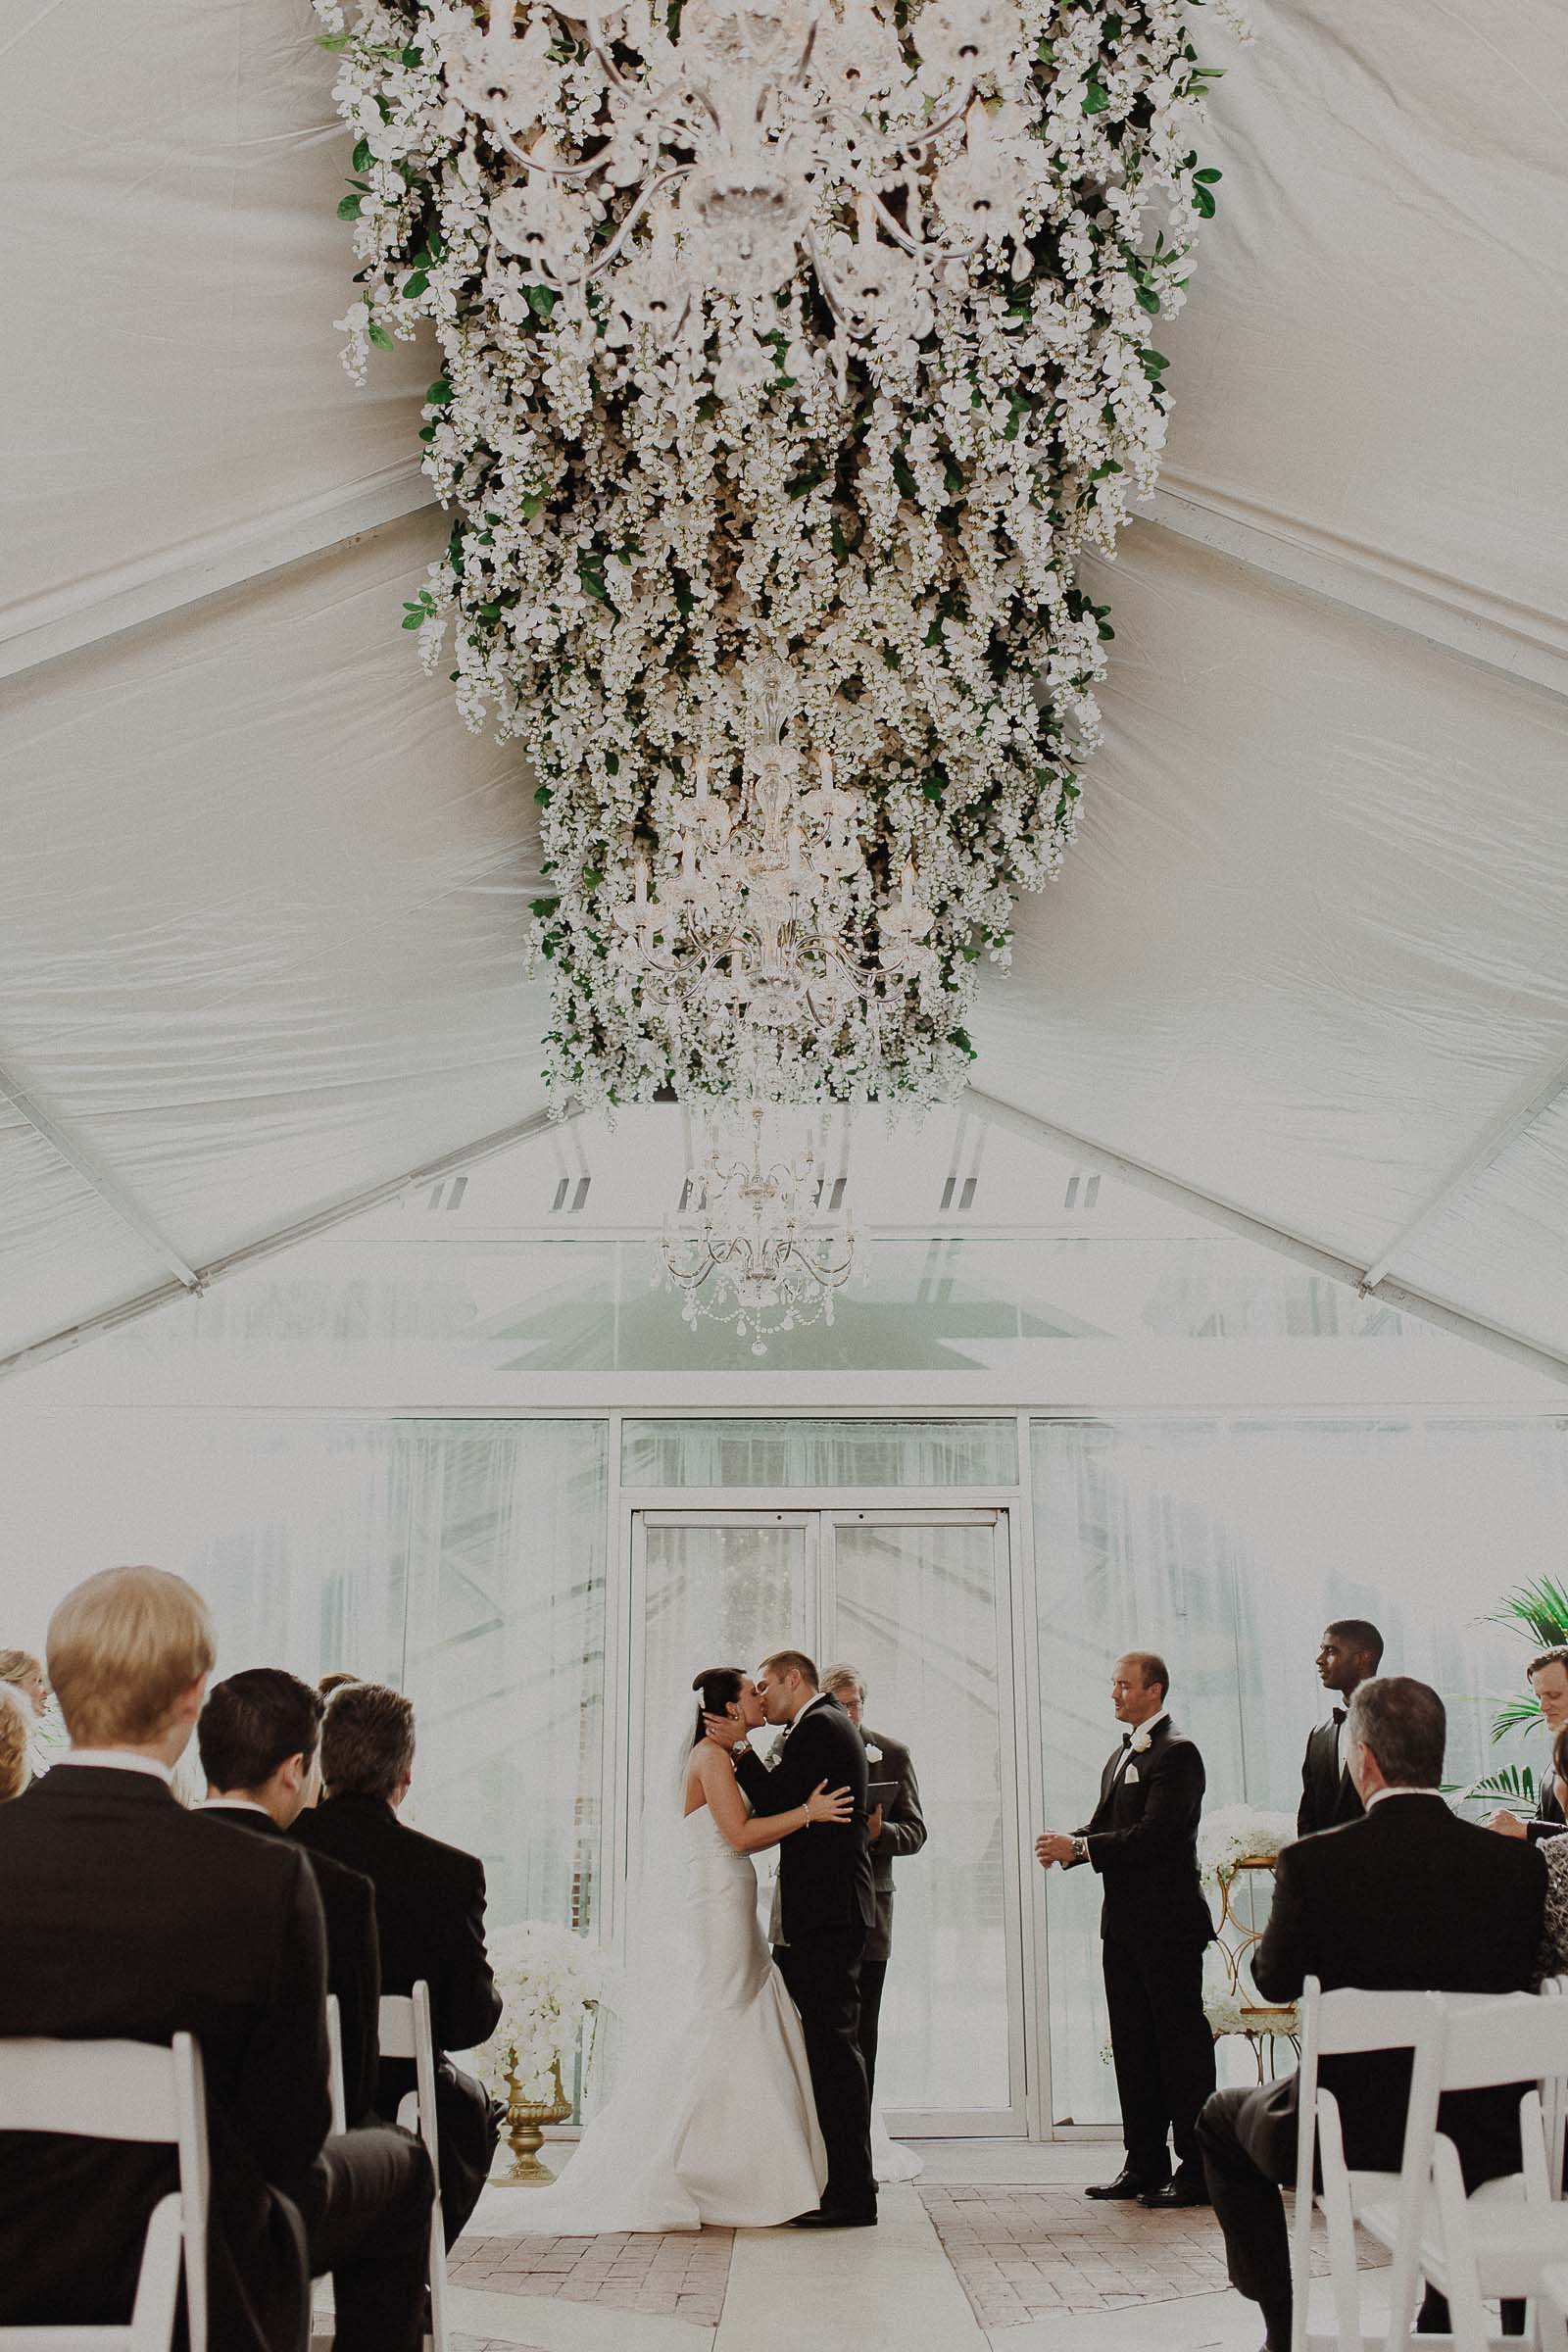 epic flower piece for wedding ceremony